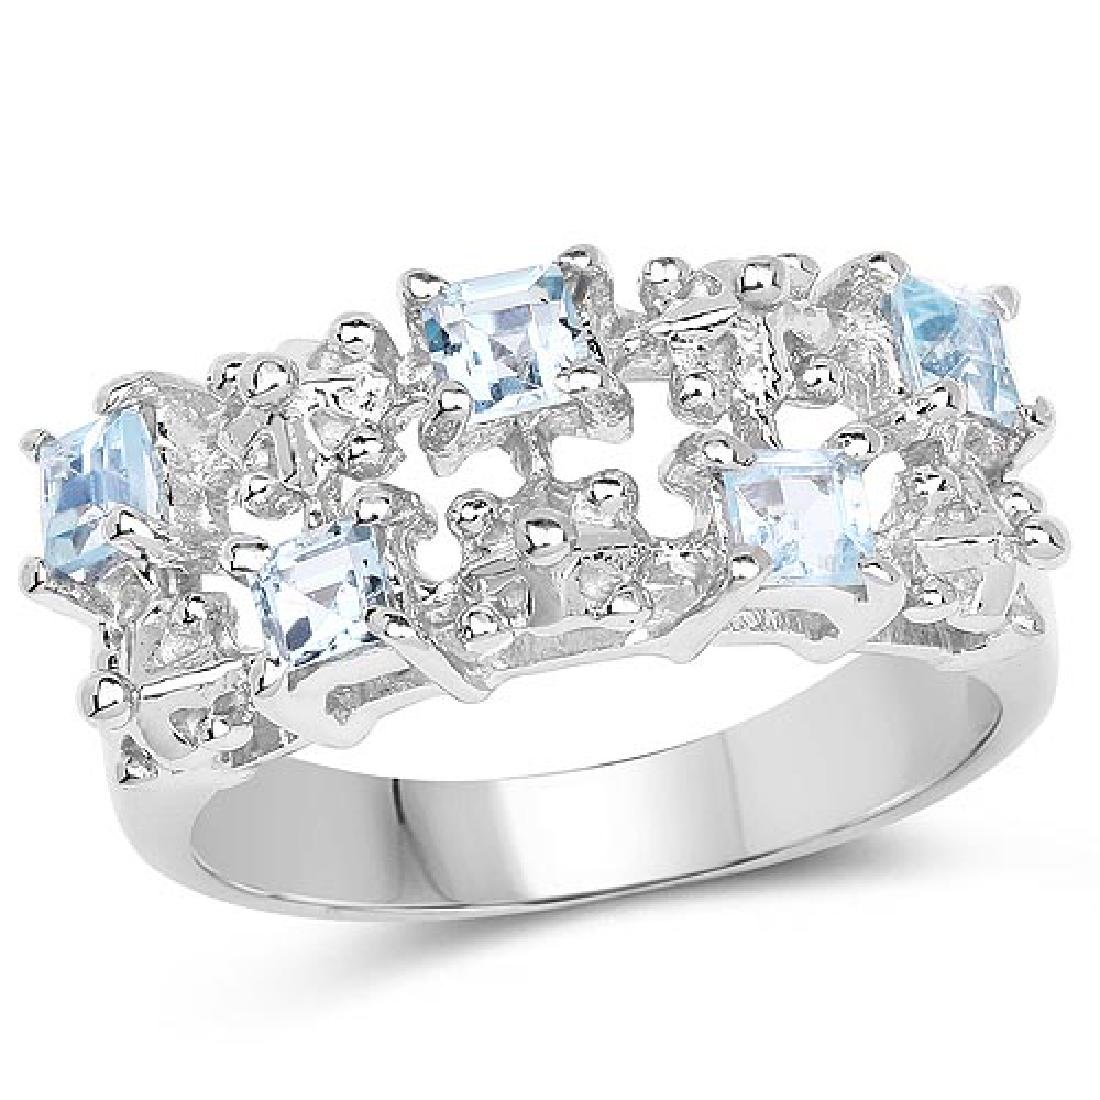 0.95 Carat Genuine Blue Topaz .925 Sterling Silver Ring